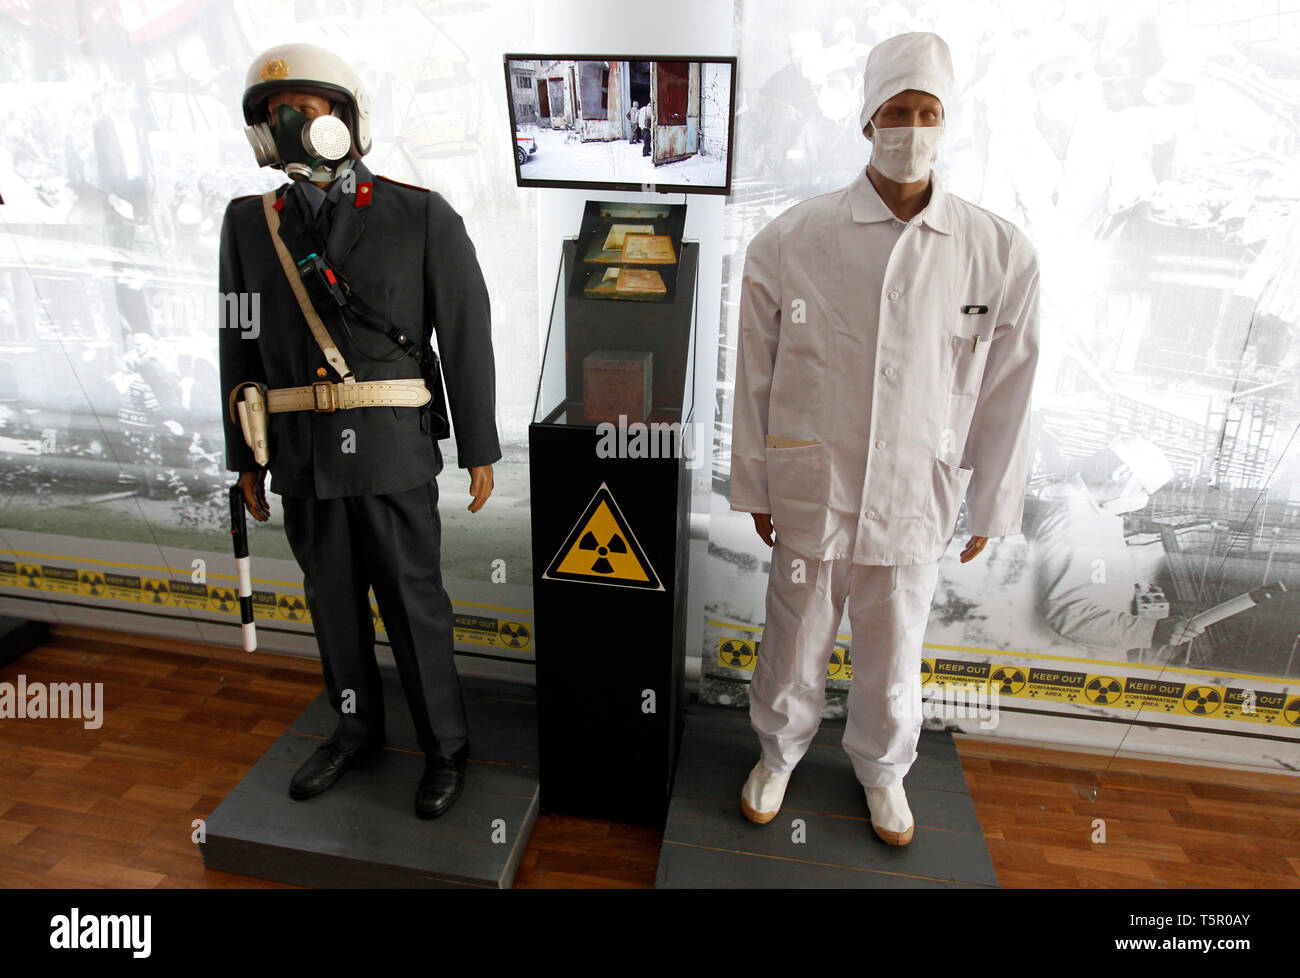 Exhibits are seen at a local museum dedicated to the Chernobyl disaster during the anniversary. Ukrainians mark the 33rd anniversary of Chernobyl catastrophe. The explosion of the fourth block of the Chernobyl nuclear plant on 26 April 1986 is still regarded as the biggest accident in the history of nuclear power generation. - Stock Image